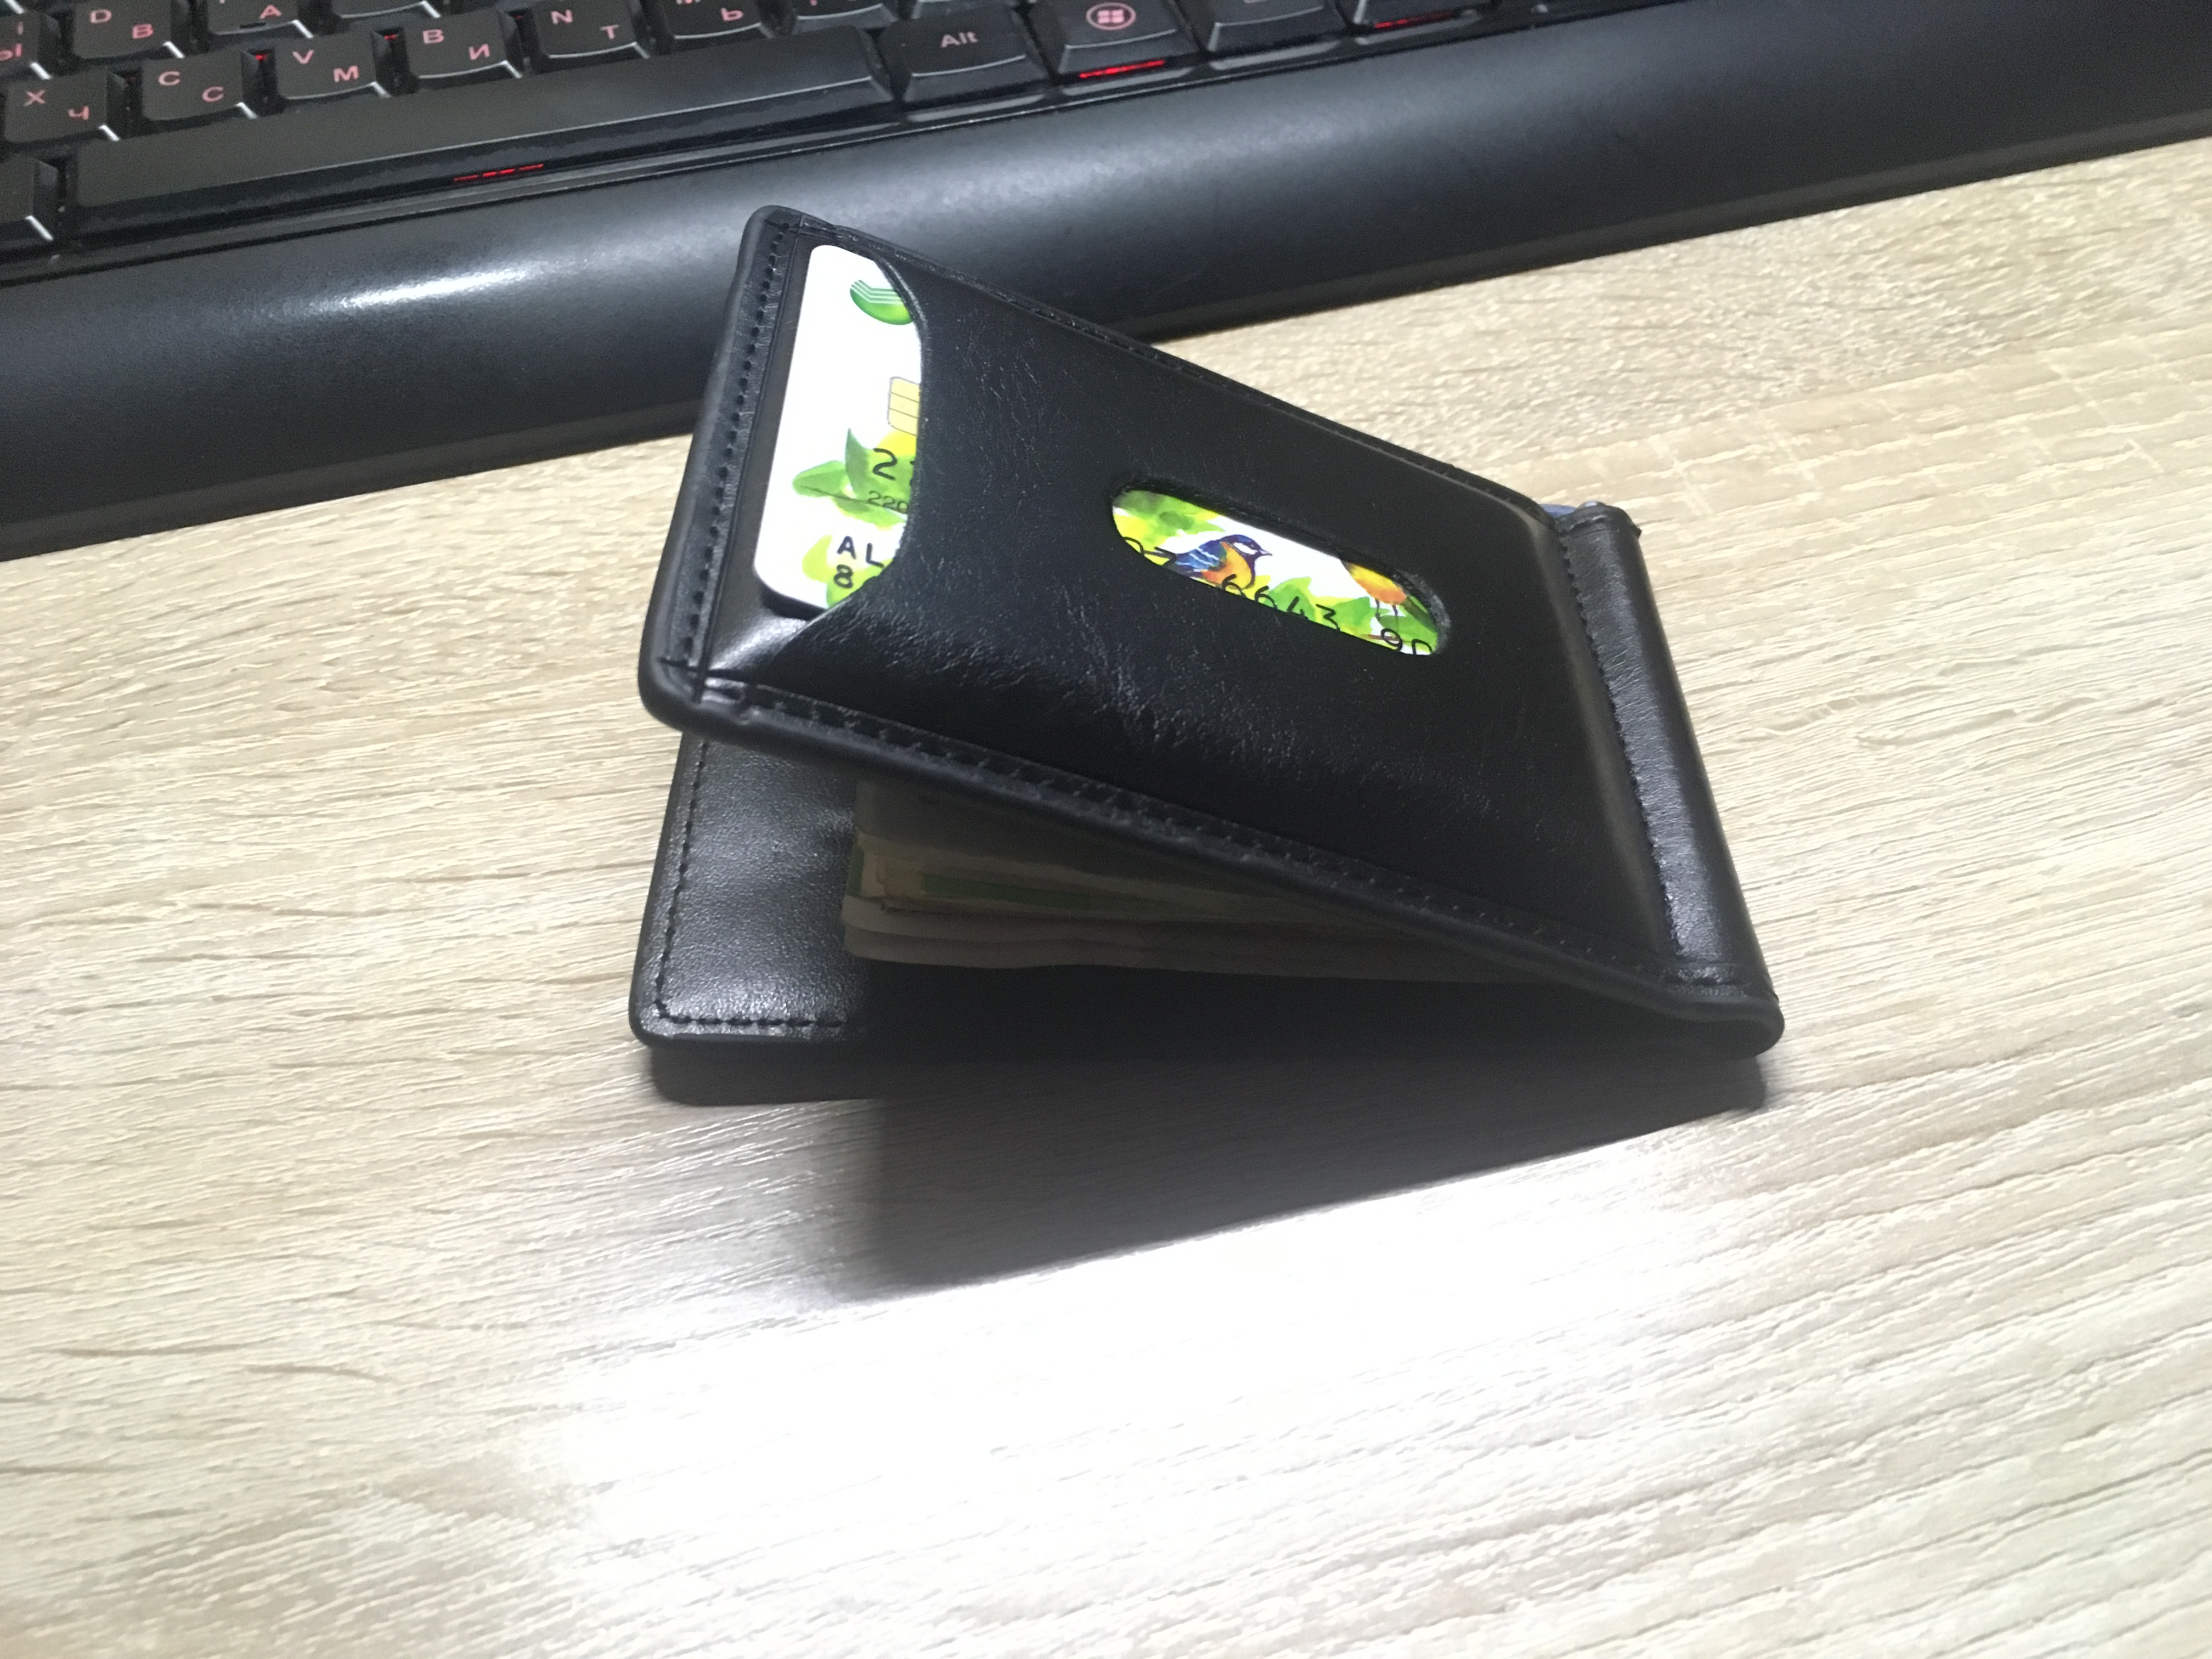 Ocean Bluevin Foreign Portable Men's Money Clips Wallet Black Brown Quality Fashion Soft 2 Folds ID Credit Card Bit Clip Cateira photo review